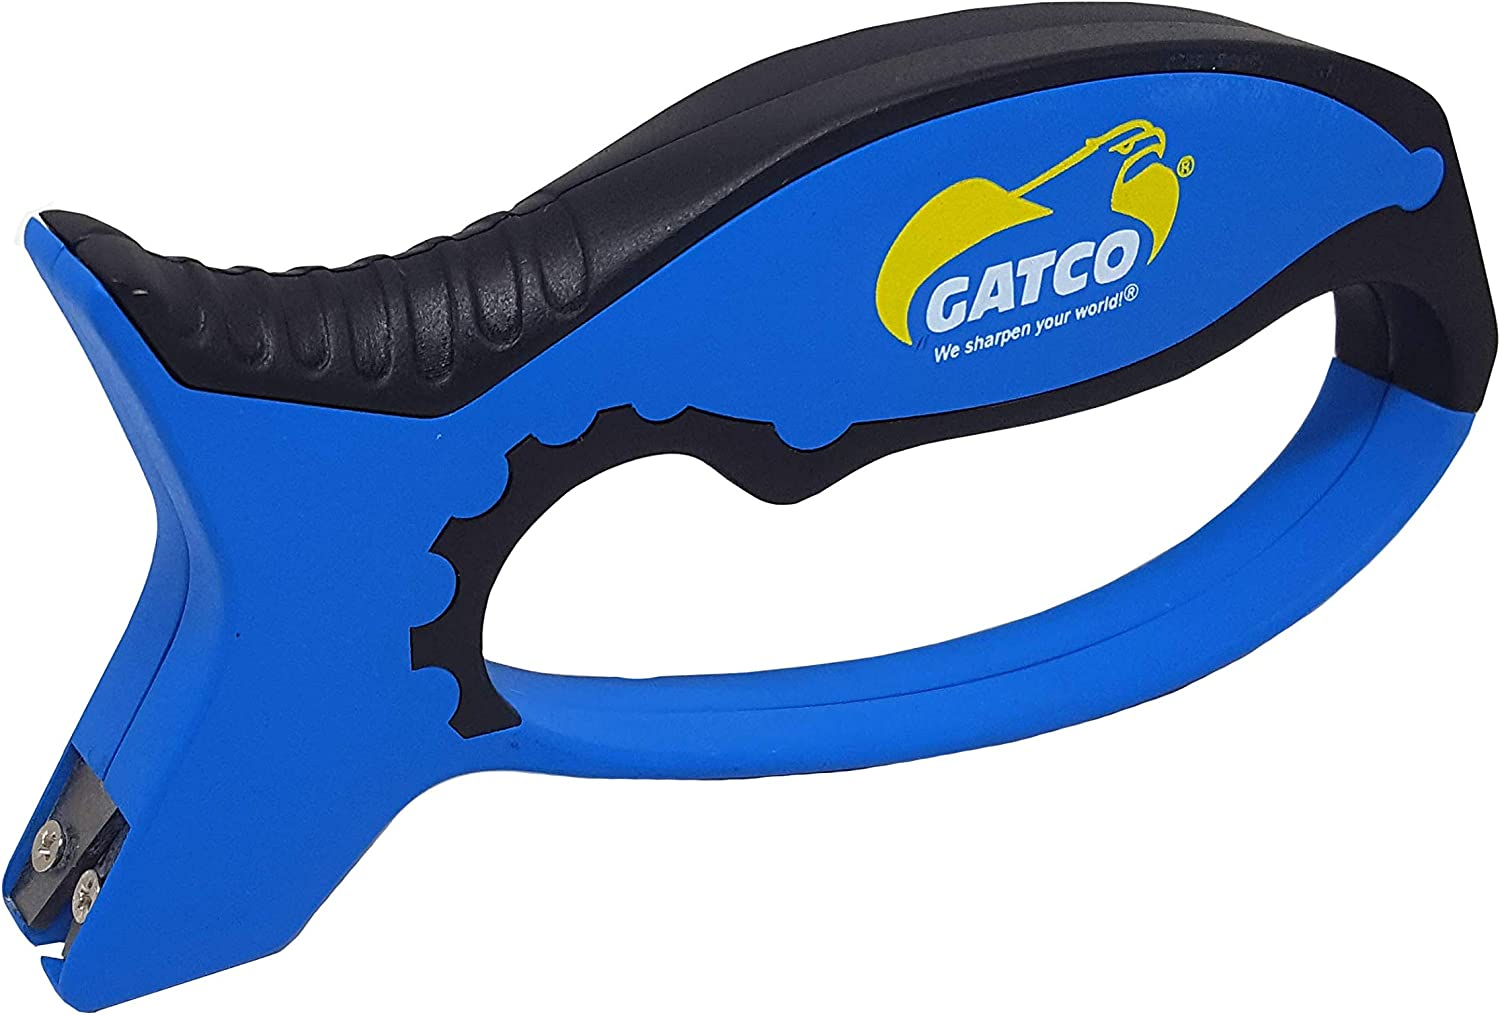 Gatco Easy Pull Through Sharpener Kraton with Grip San Francisco Special price Mall Soft Blue